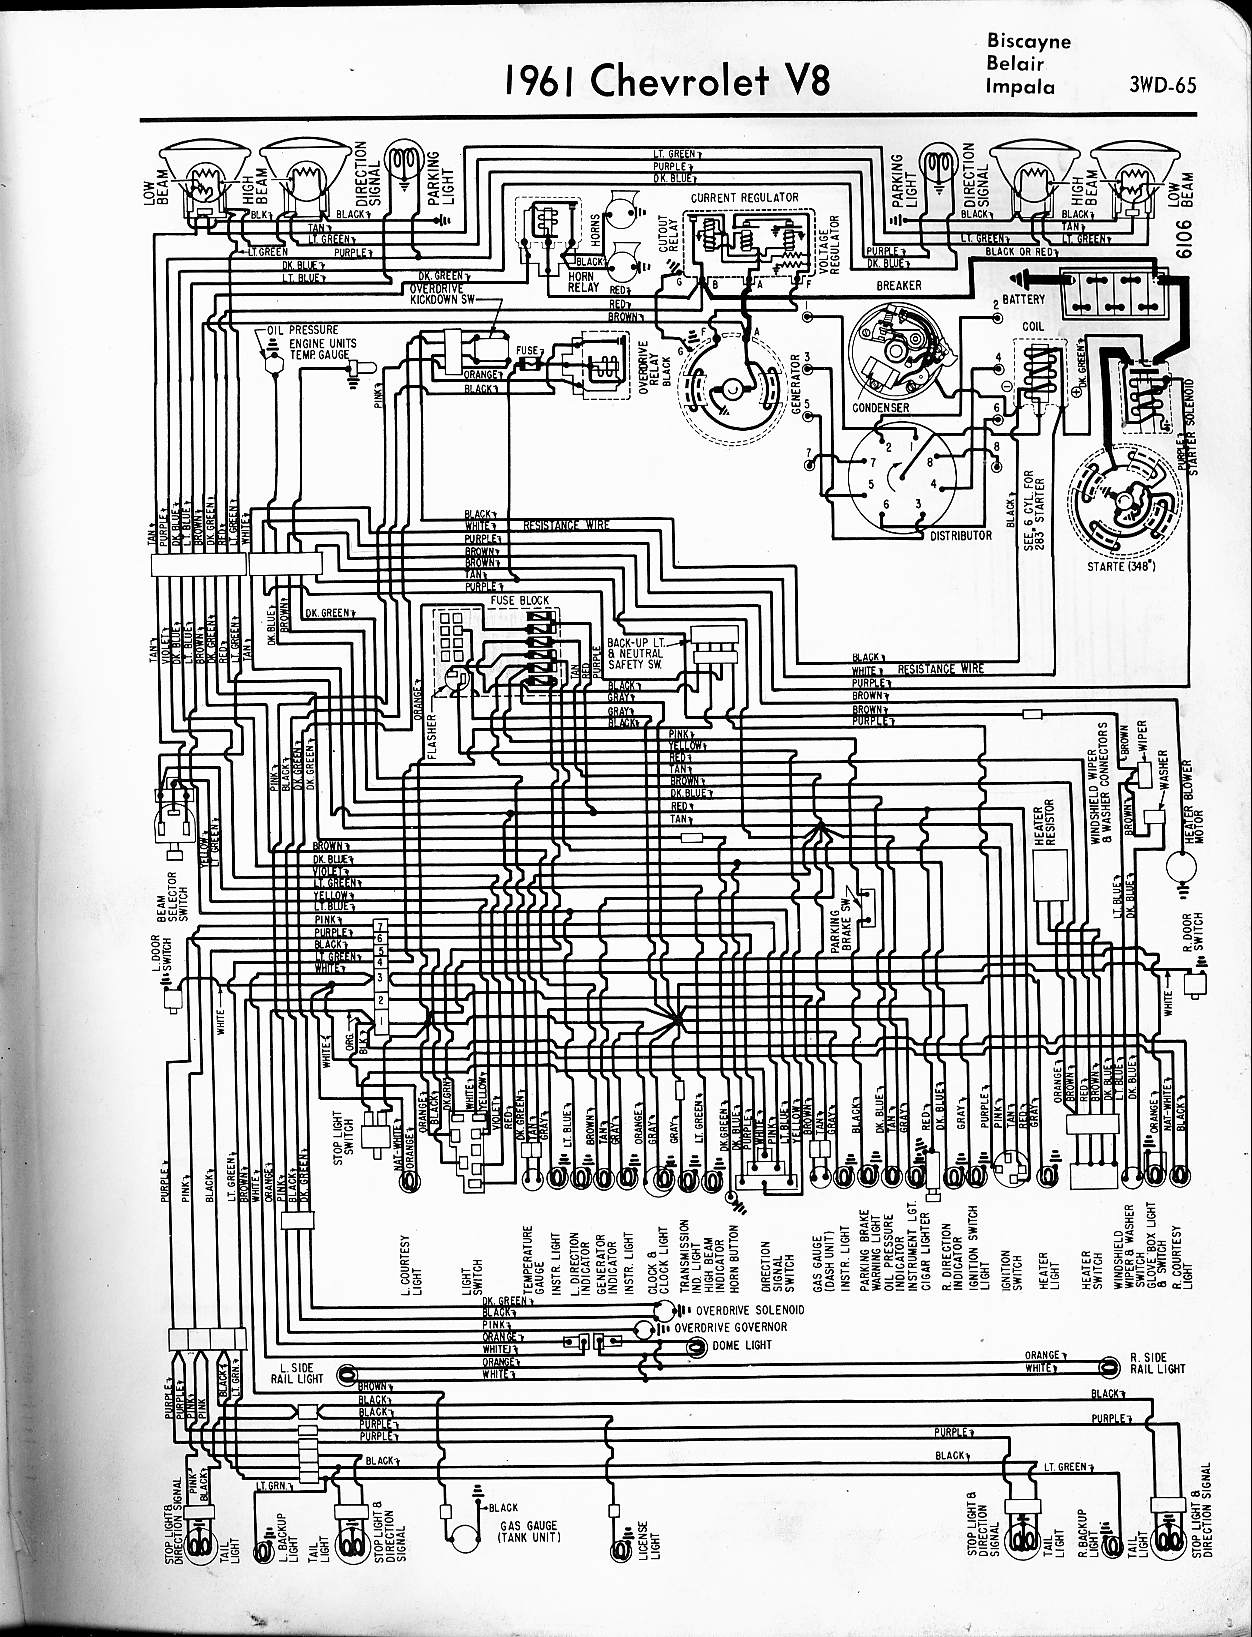 wire diagram for a 1965 chevy c 20 wiring diagram perfomance  wiring diagram 1965 chevy c 10 #12